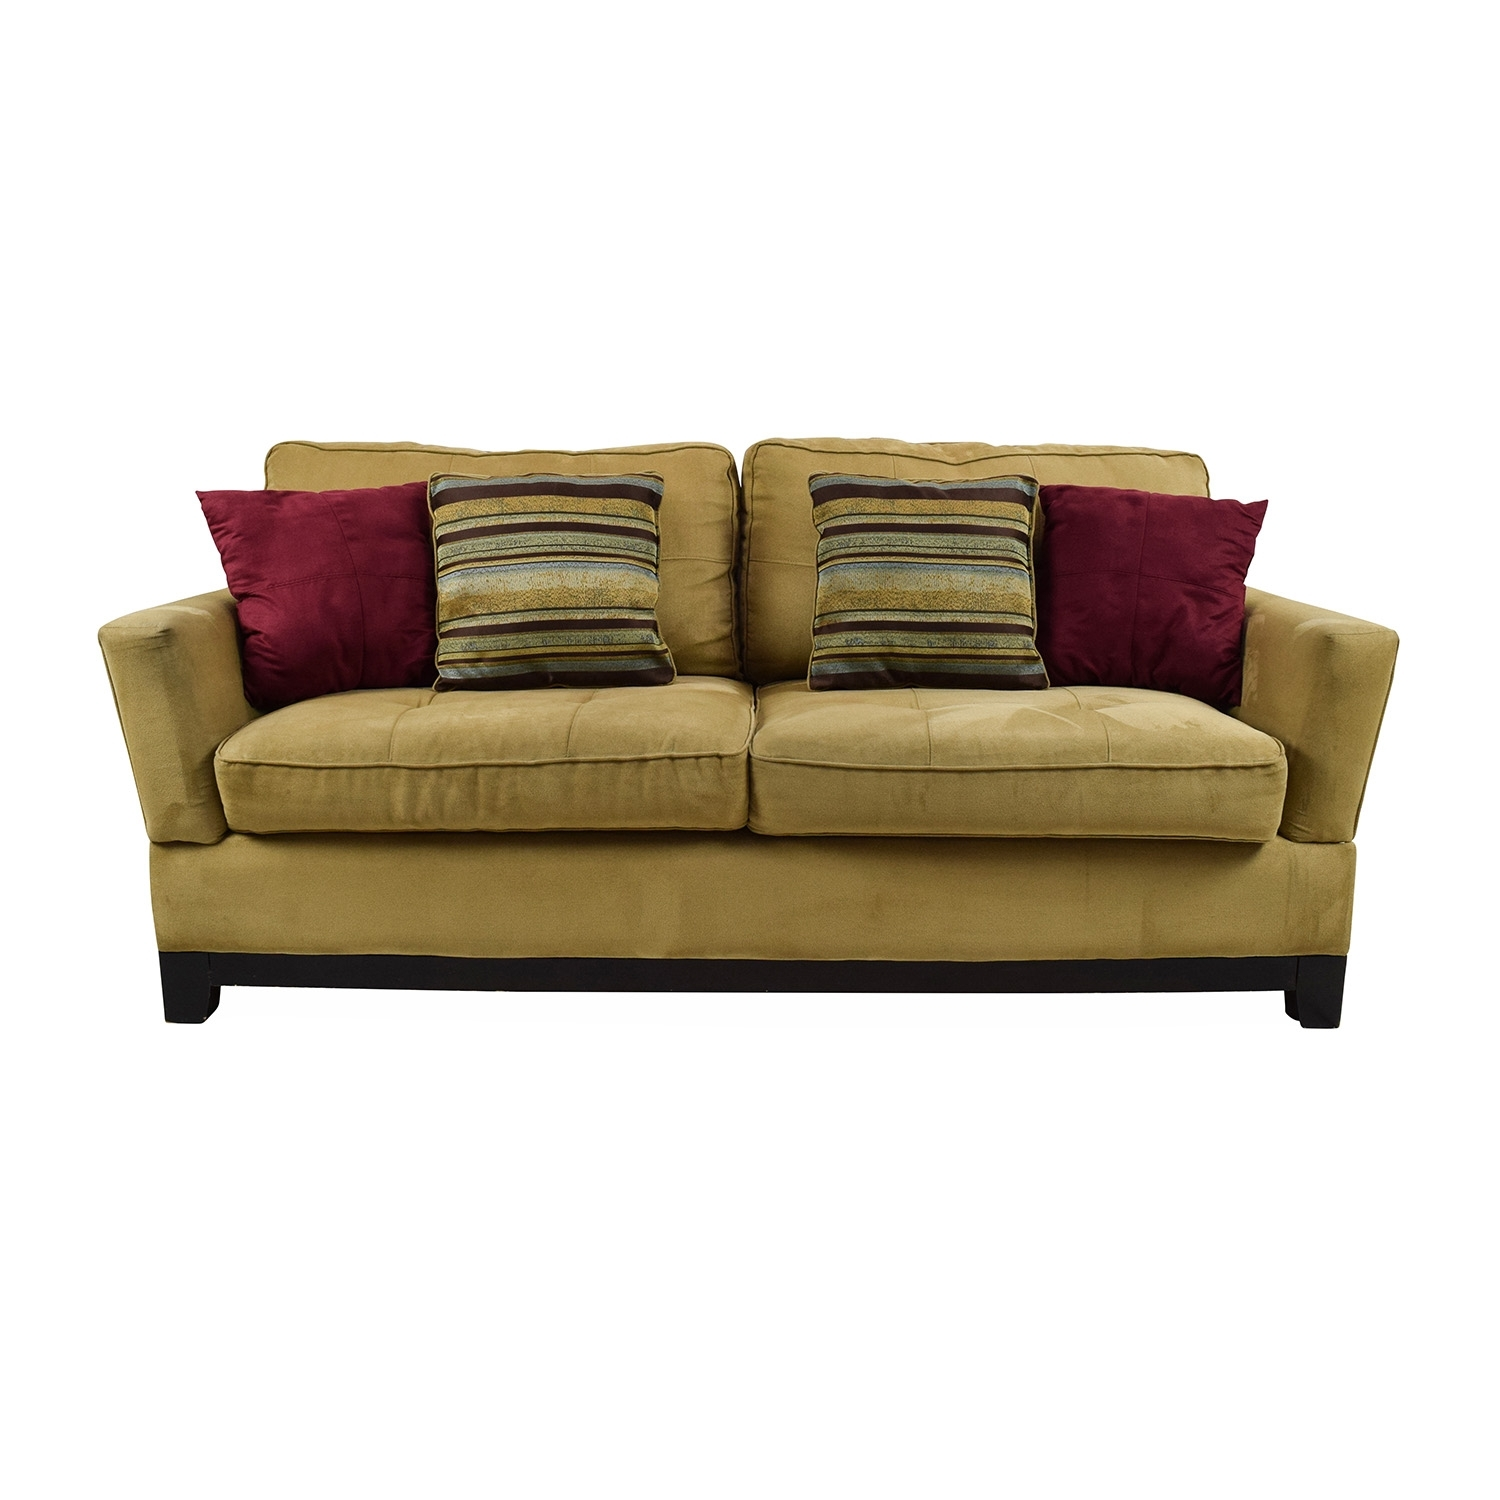 78% Off – Jennifer Convertibles Jennifer Convertibles Tan Sofa / Sofas Within Jennifer Convertibles Sectional Sofas (View 6 of 10)